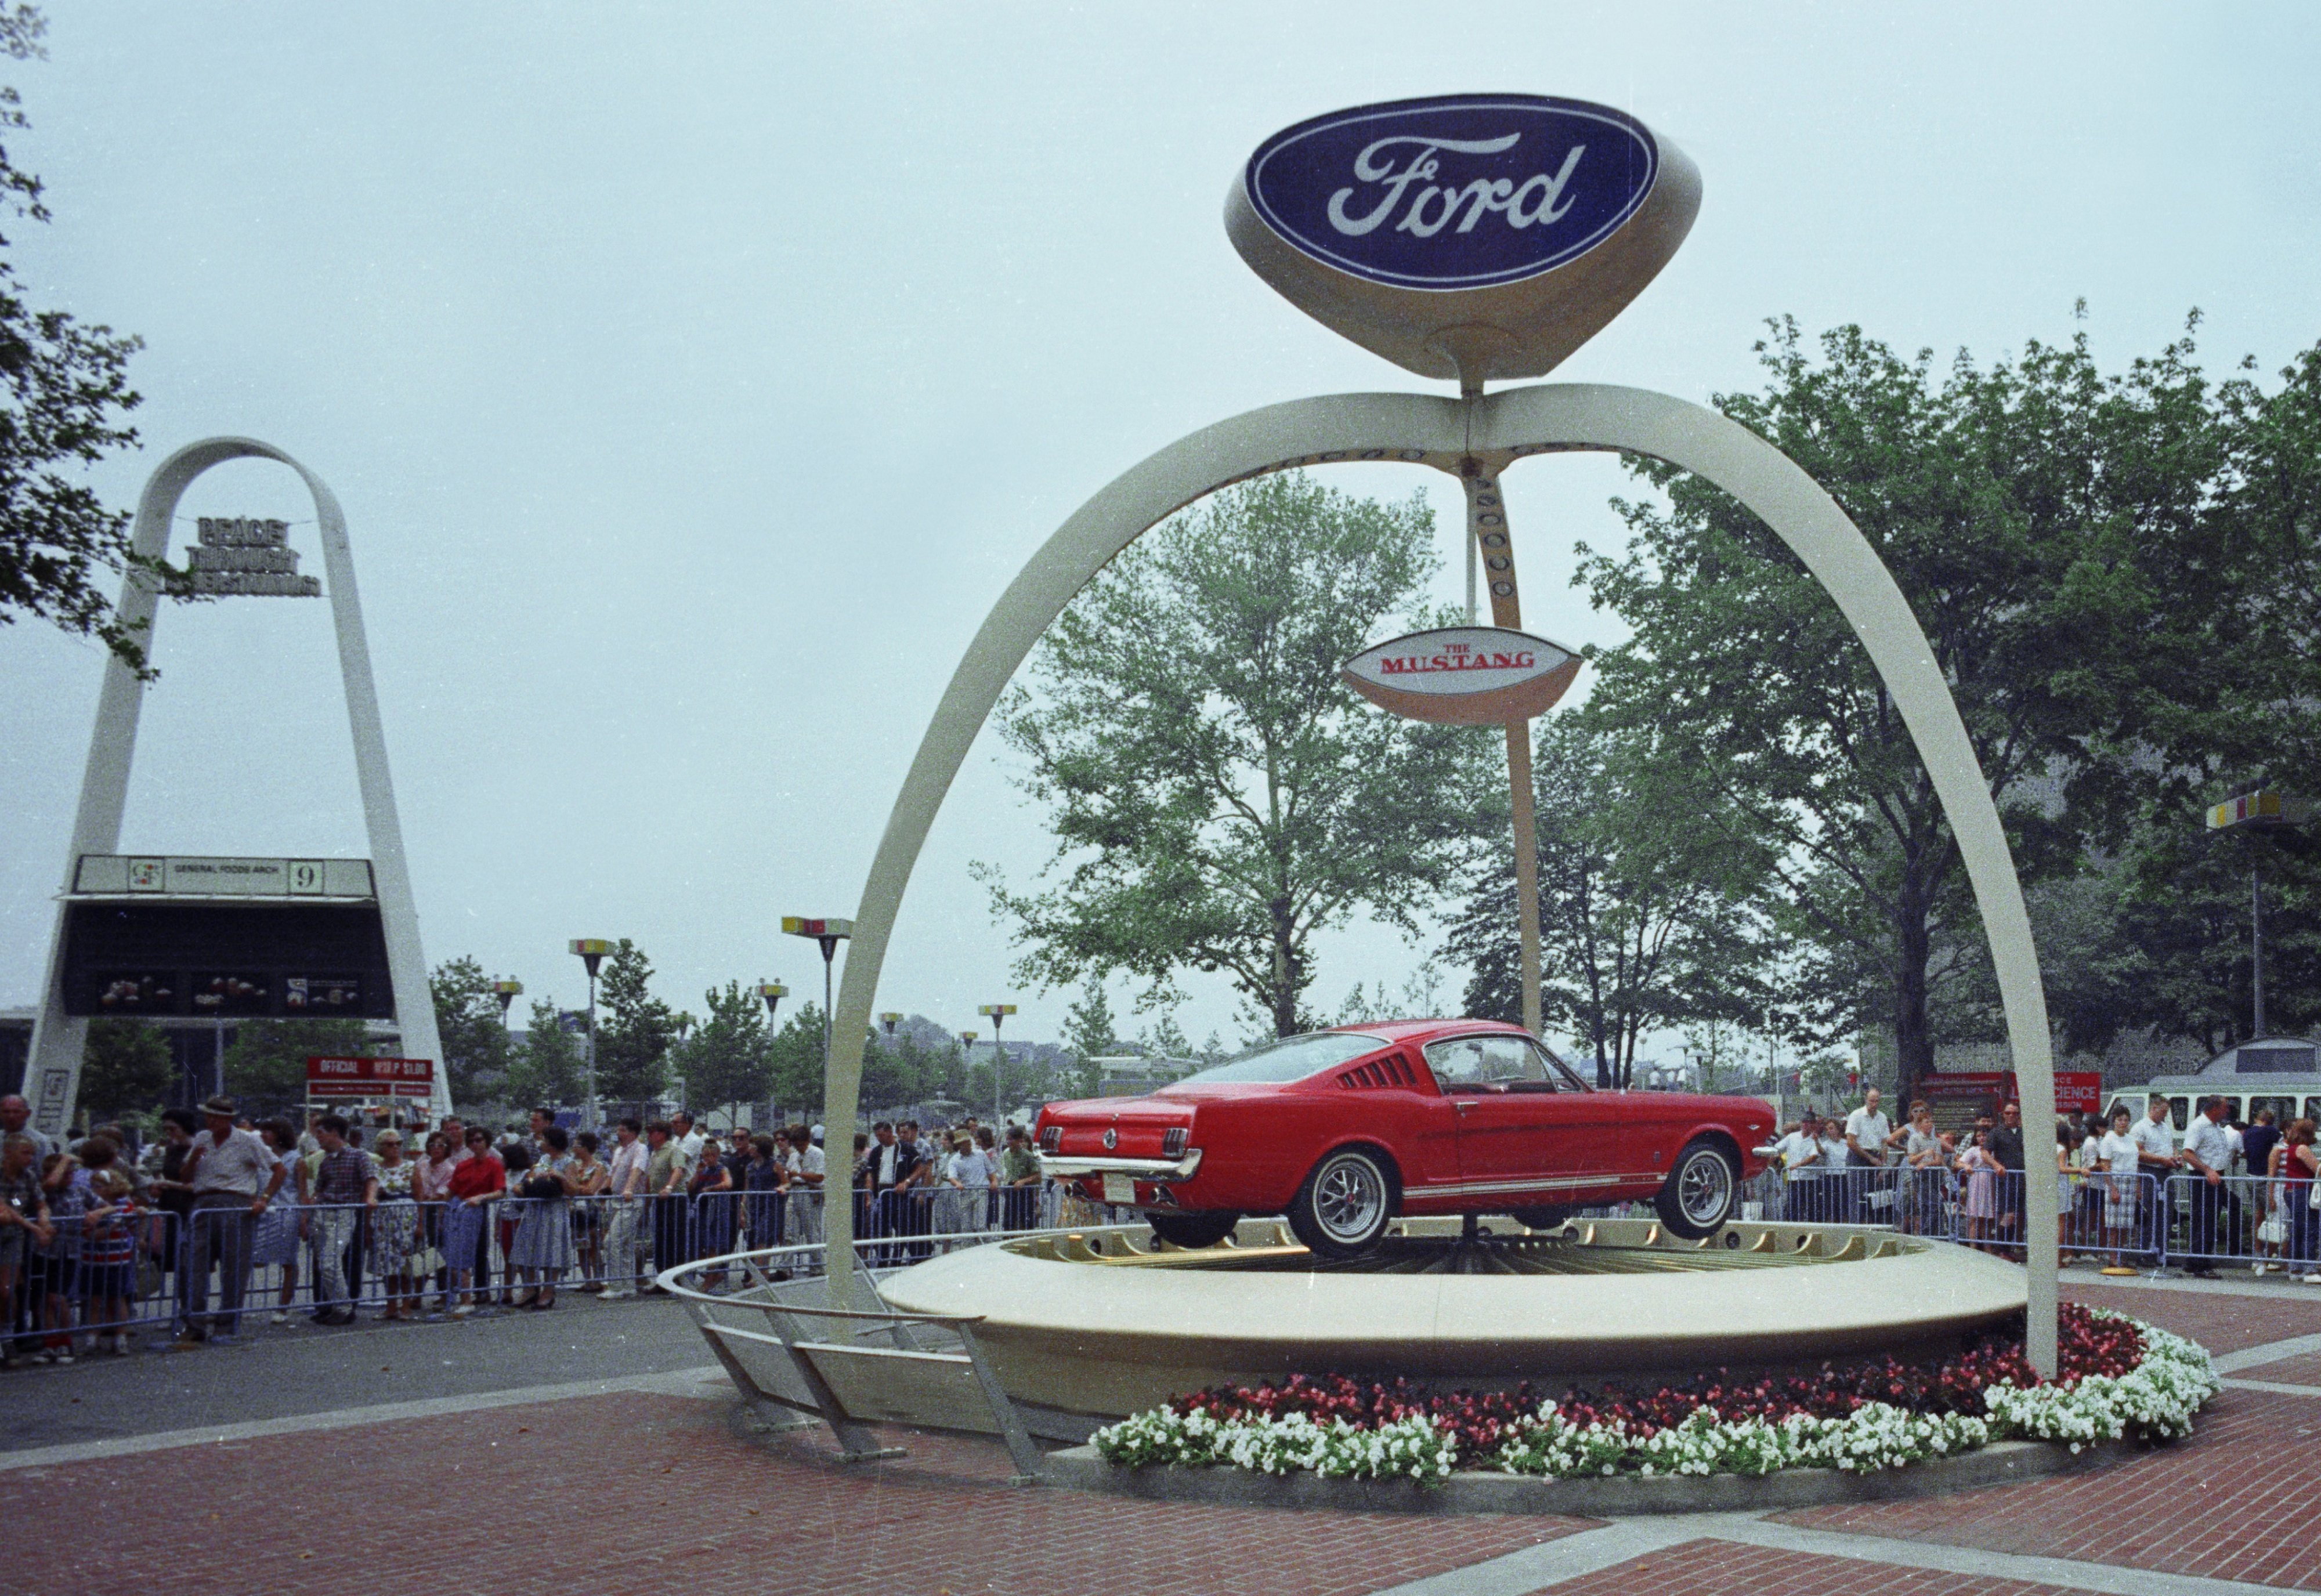 1964 World's Fair Ford Exhibit 1965 Mustang Baby boomers, who once drove sales of this Ford Mustang, remain key for car manufacturers.